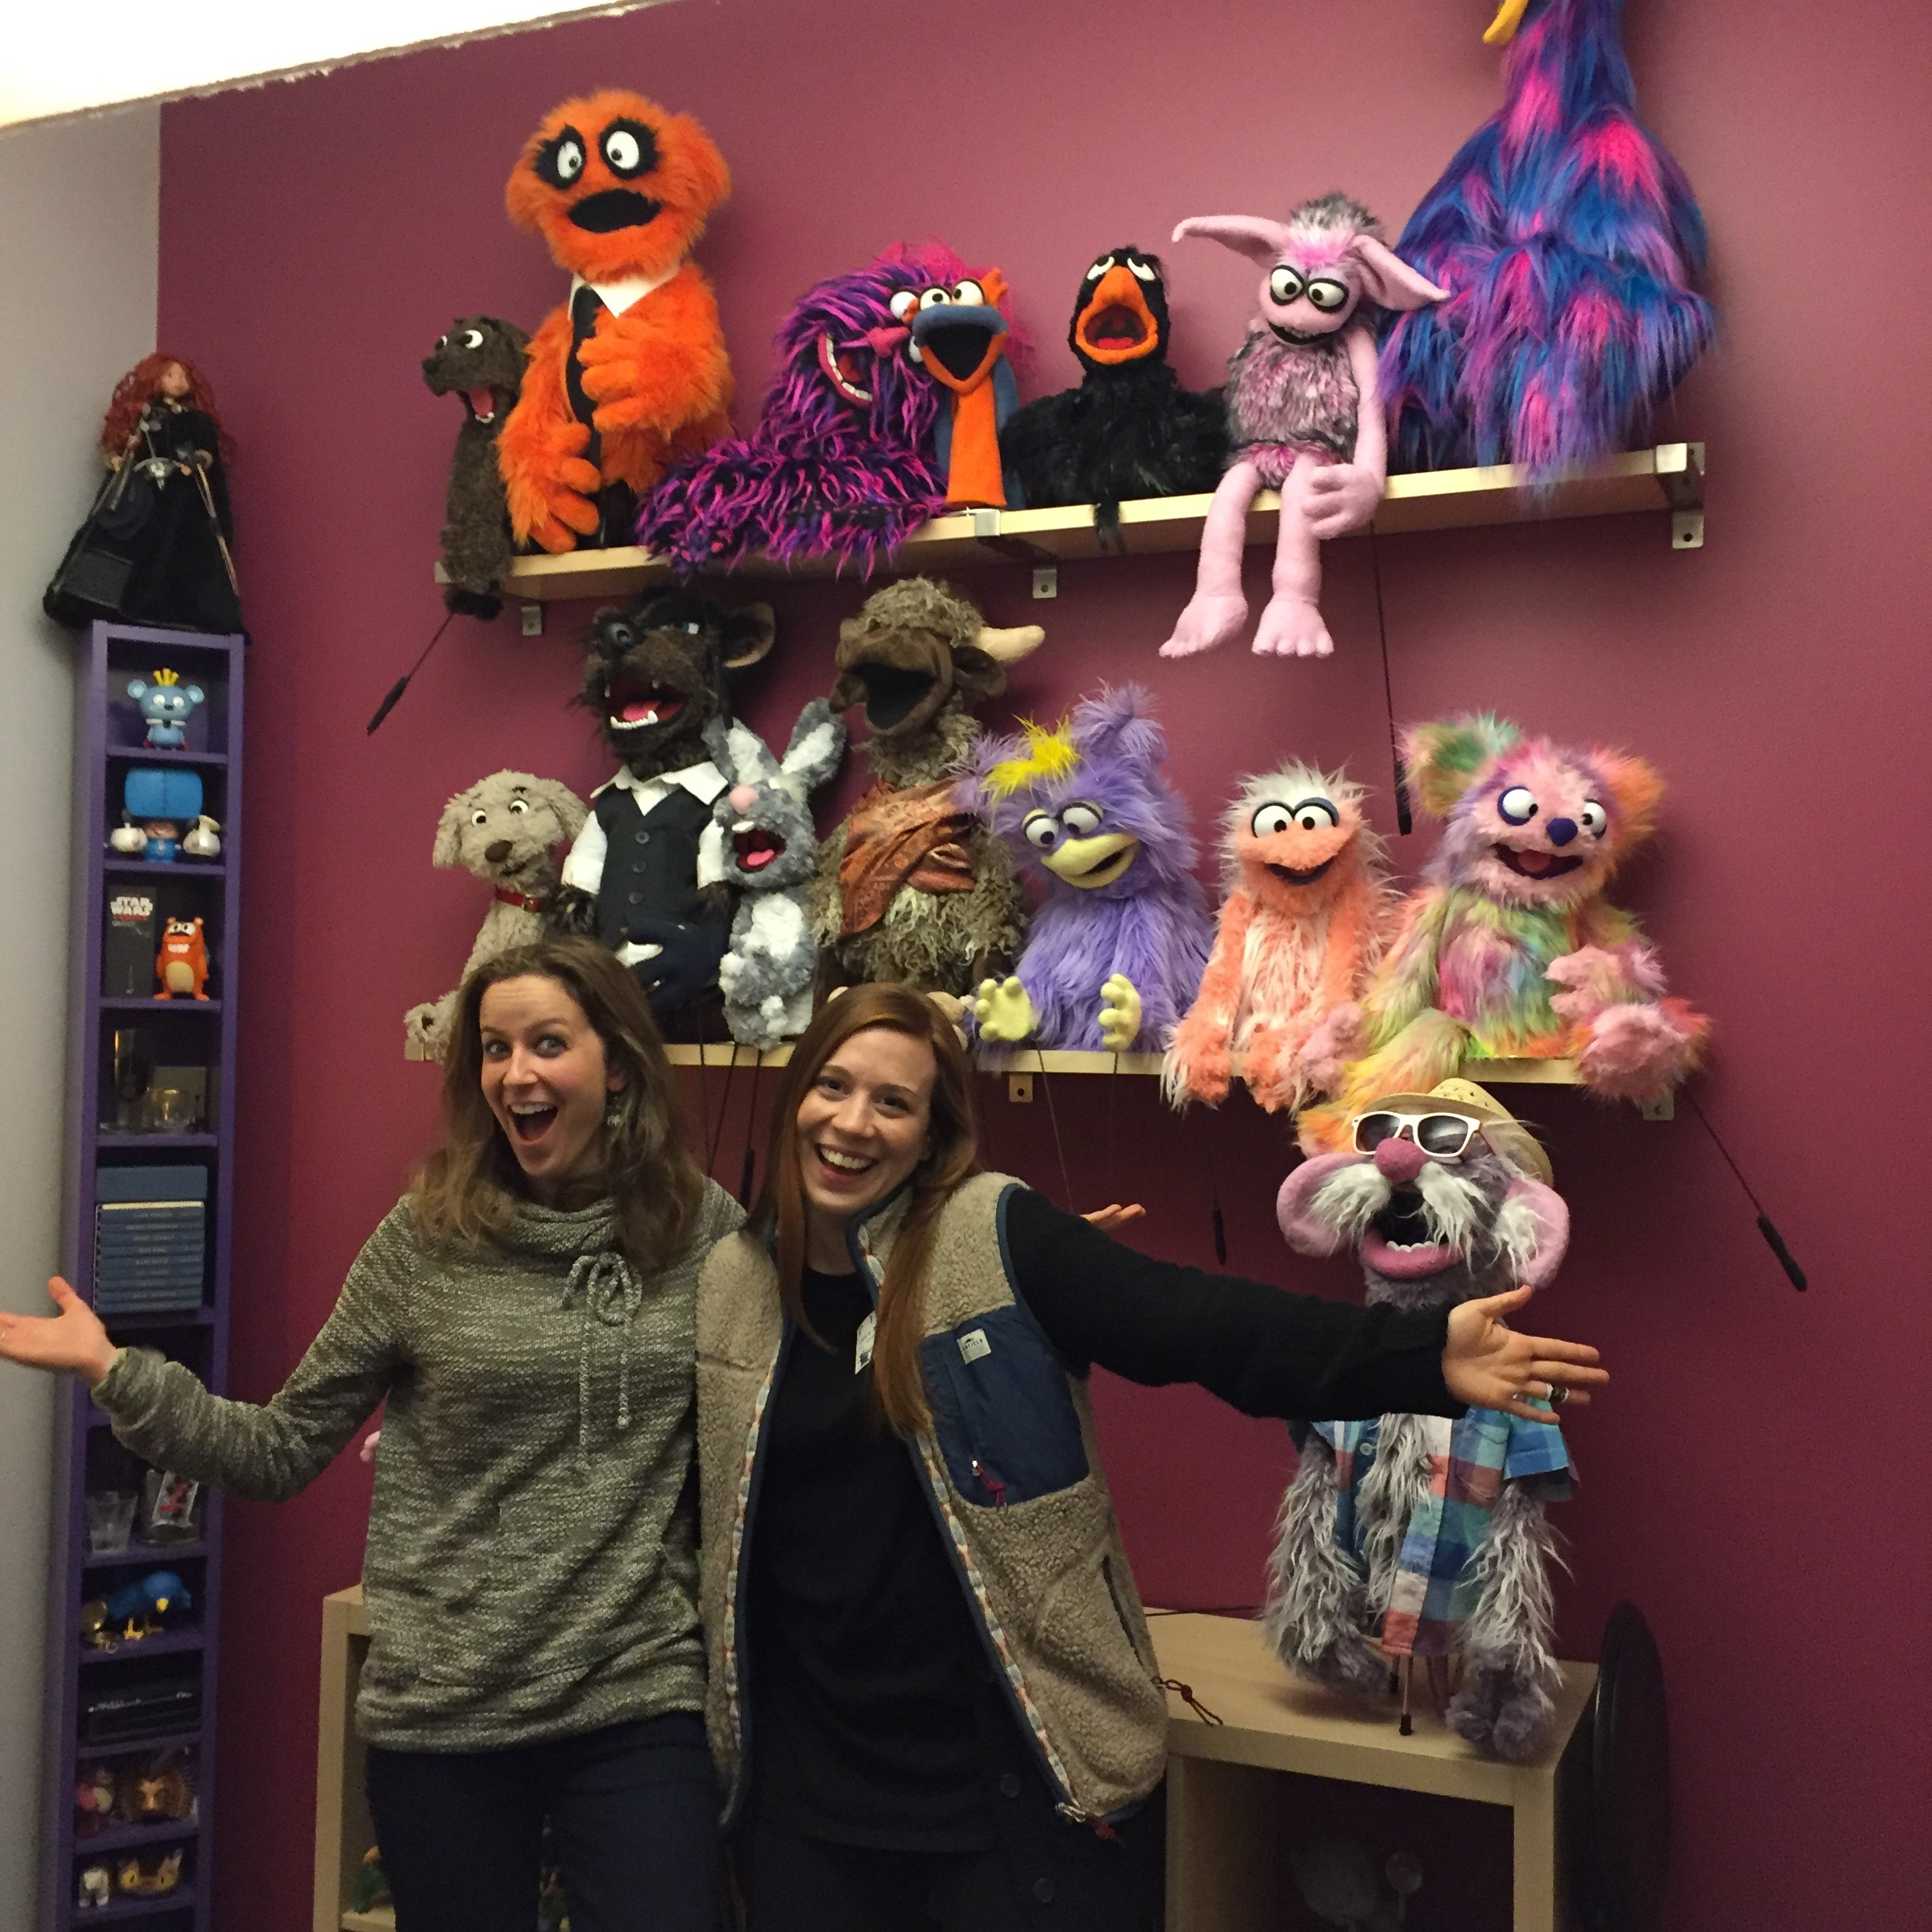 My friend from Ringling School of Art & Design PRECOLLEGE 2004, who I reconnected with after 12 years!! Check out @cathickspuppets, who is an animator at Pixar and also builds her own Muppet style puppets! So awesome